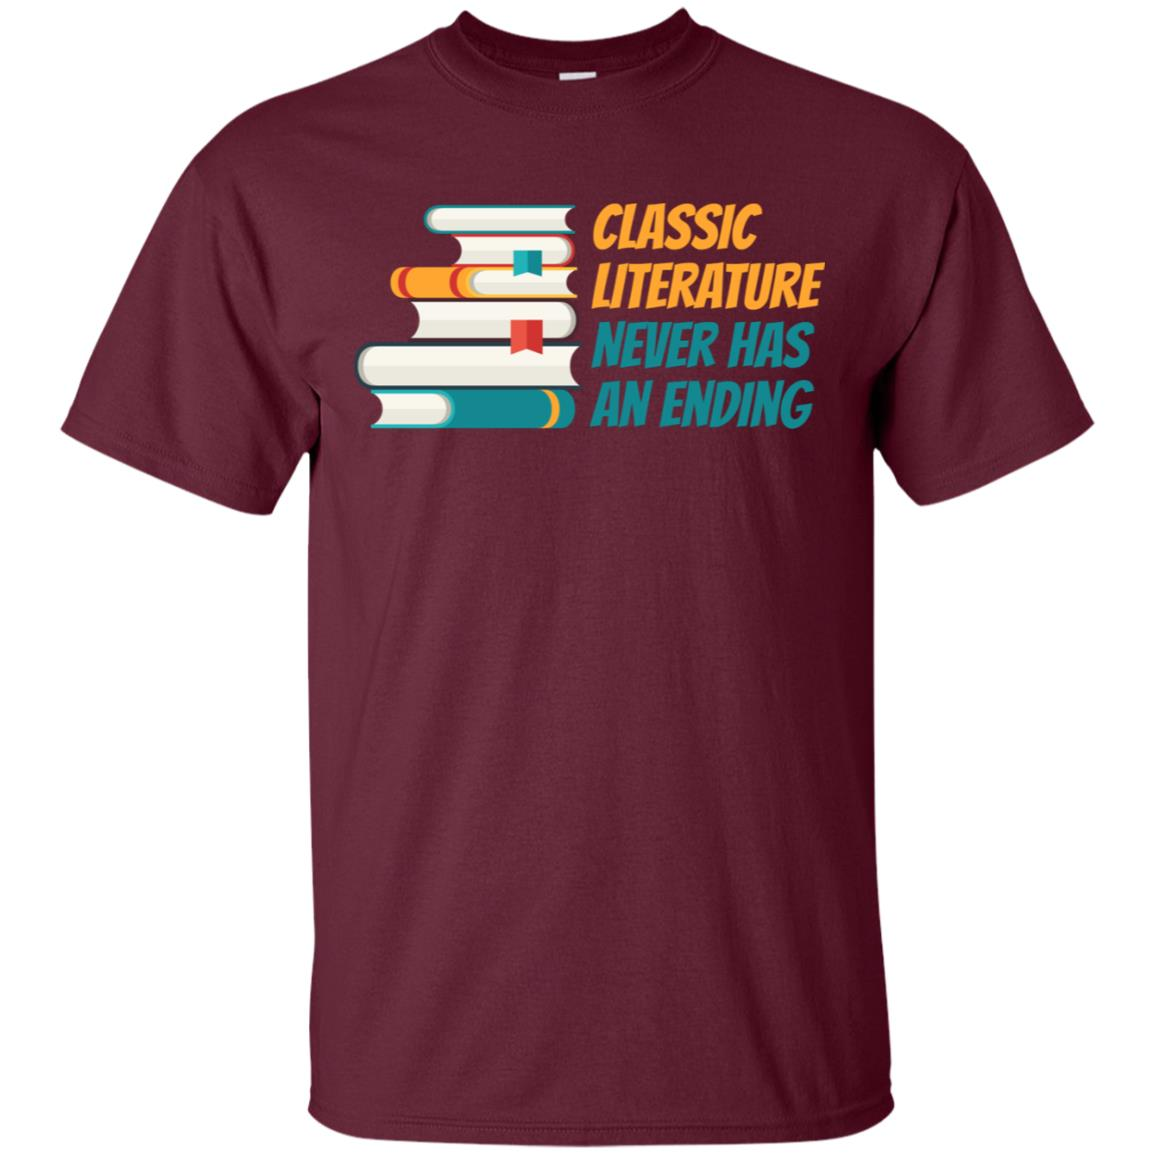 Classic Literature Never Has An Ending Funny Unisex Short Sleeve